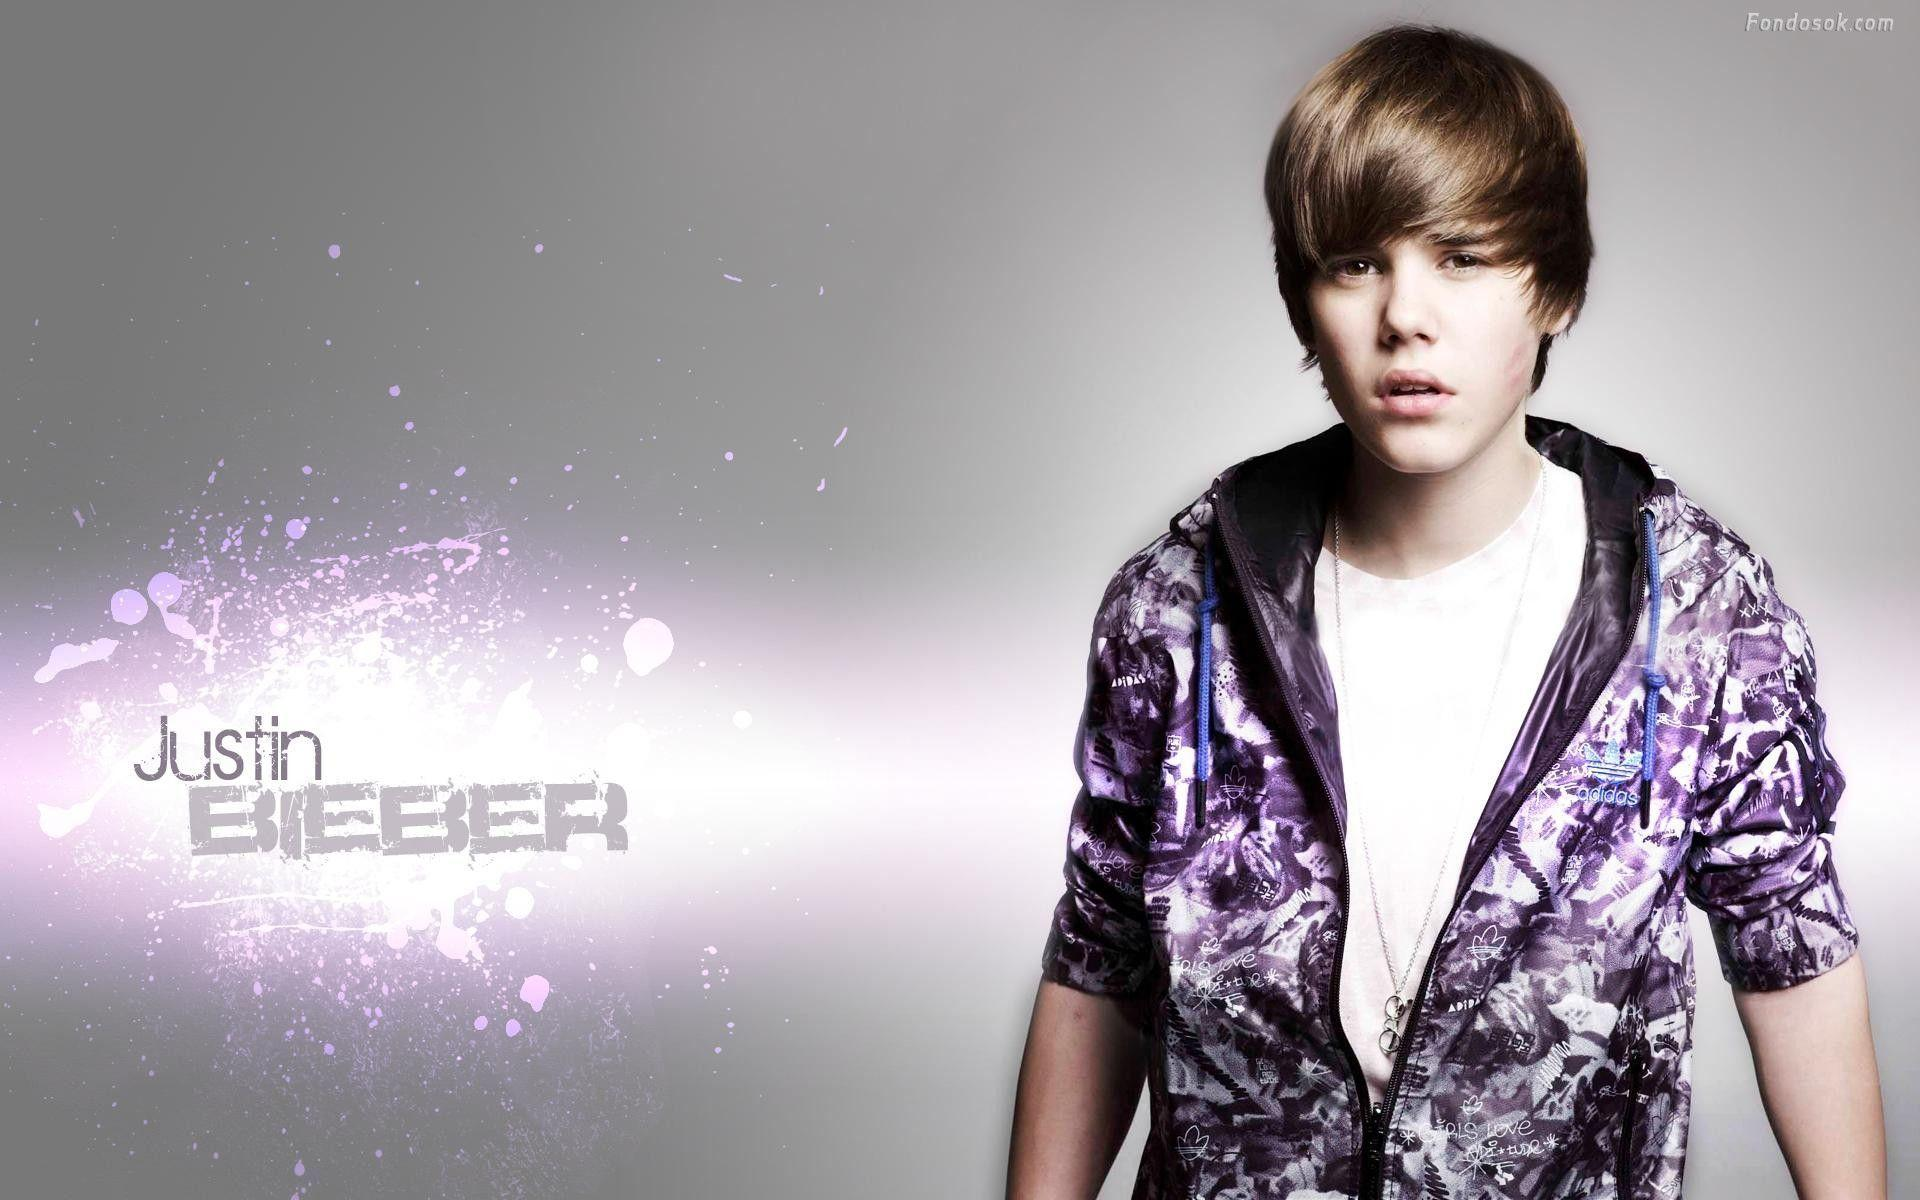 Justin Bieber Wallpapers 8262 High Definition Wallpapers